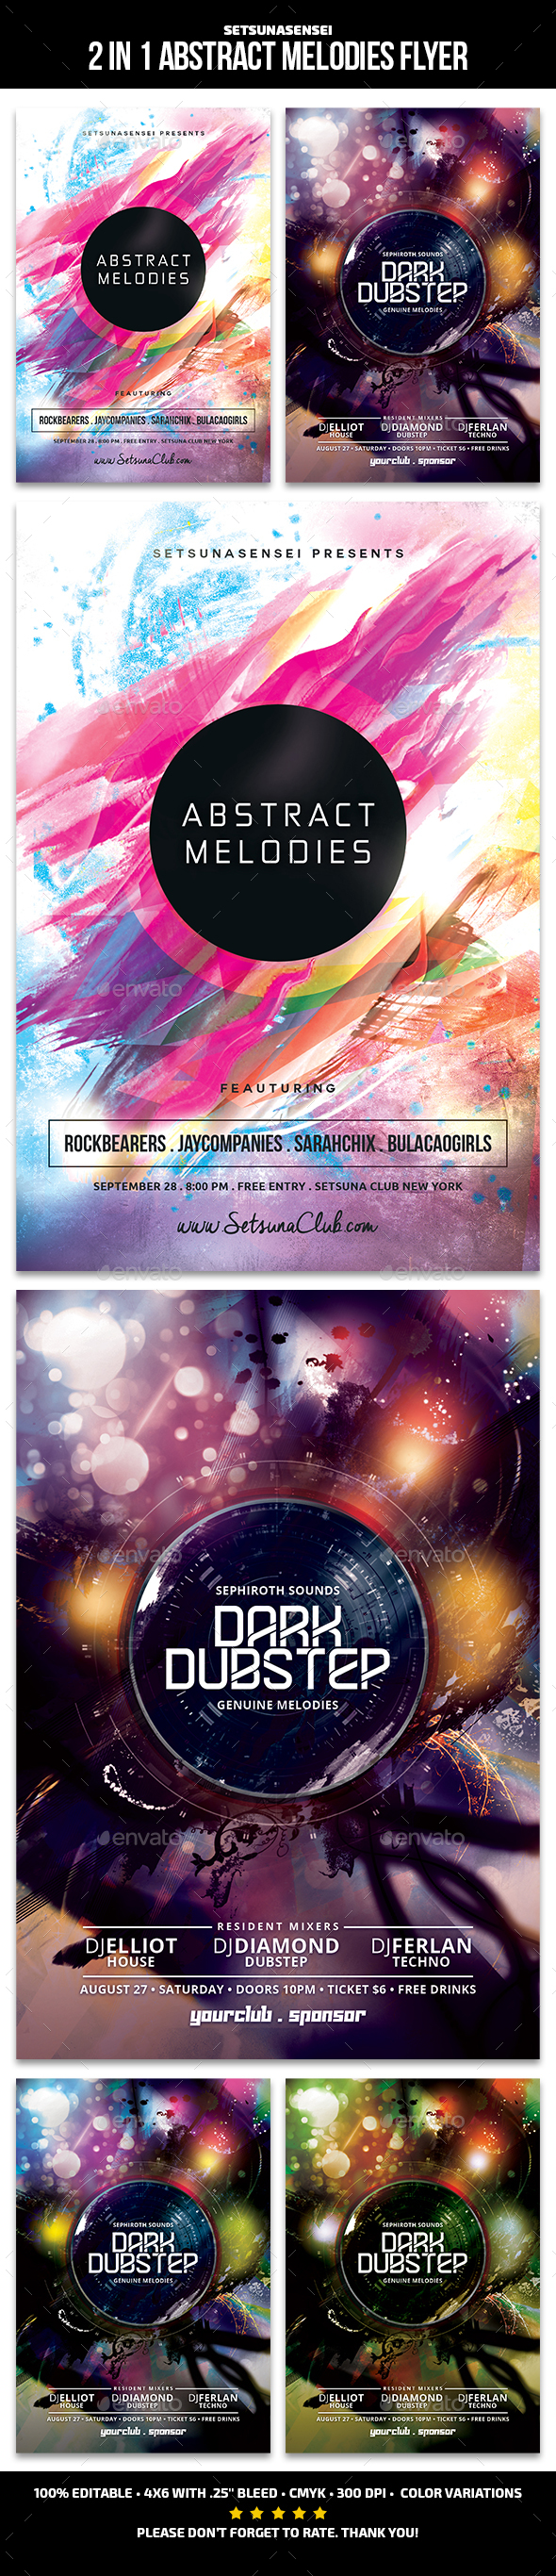 Abstract Melodies Flyer - Clubs & Parties Events